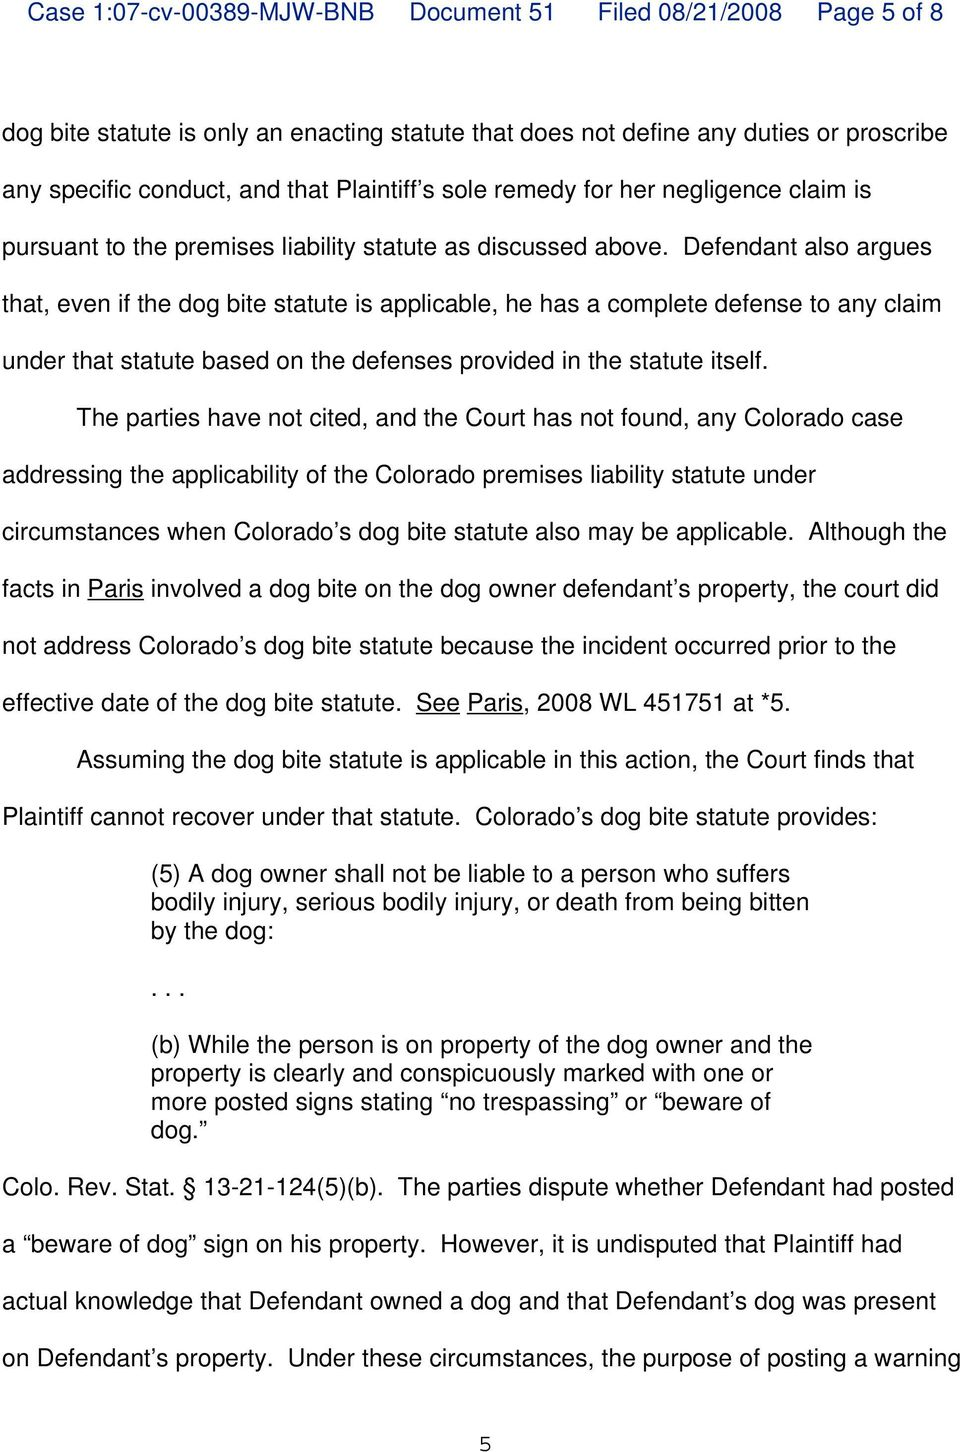 Defendant also argues that, even if the dog bite statute is applicable, he has a complete defense to any claim under that statute based on the defenses provided in the statute itself.